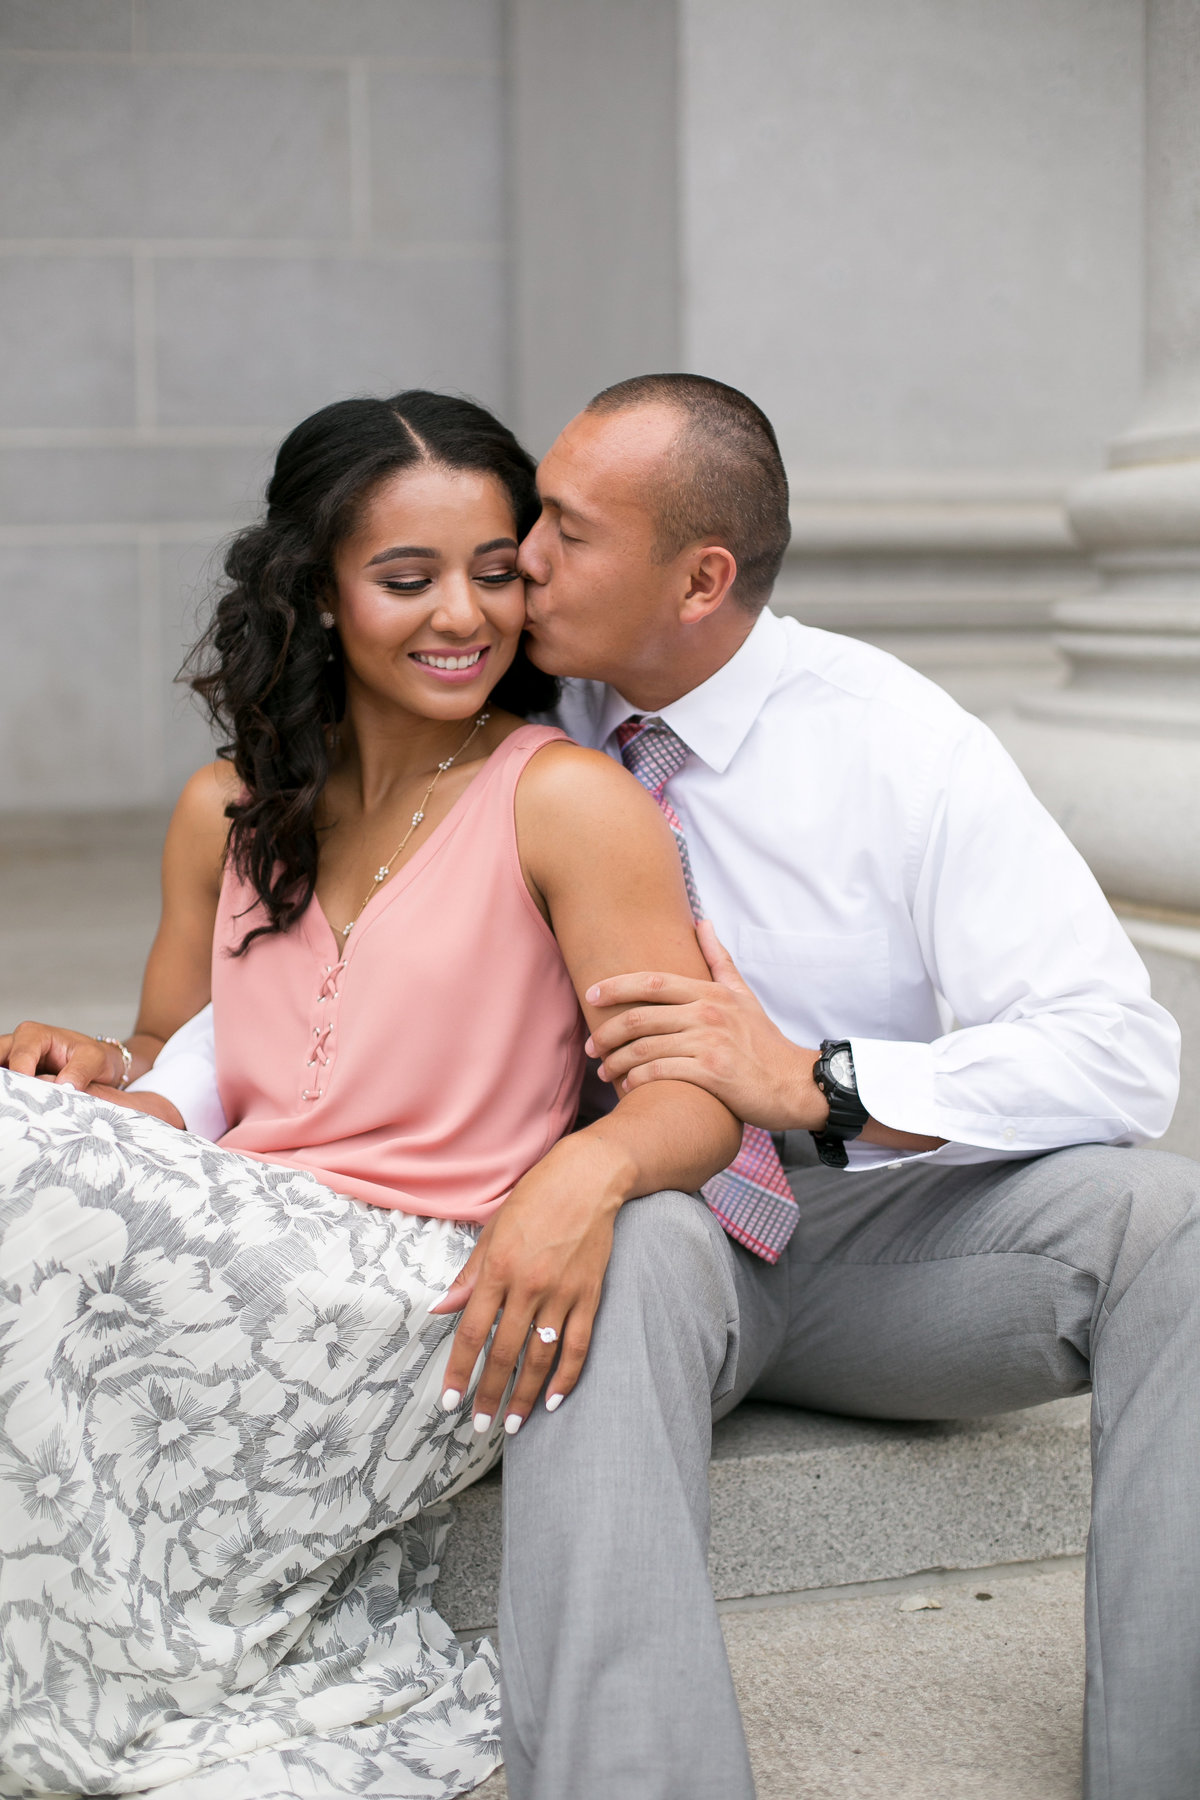 Couple sitting on steps, groom kissing bride's cheeck